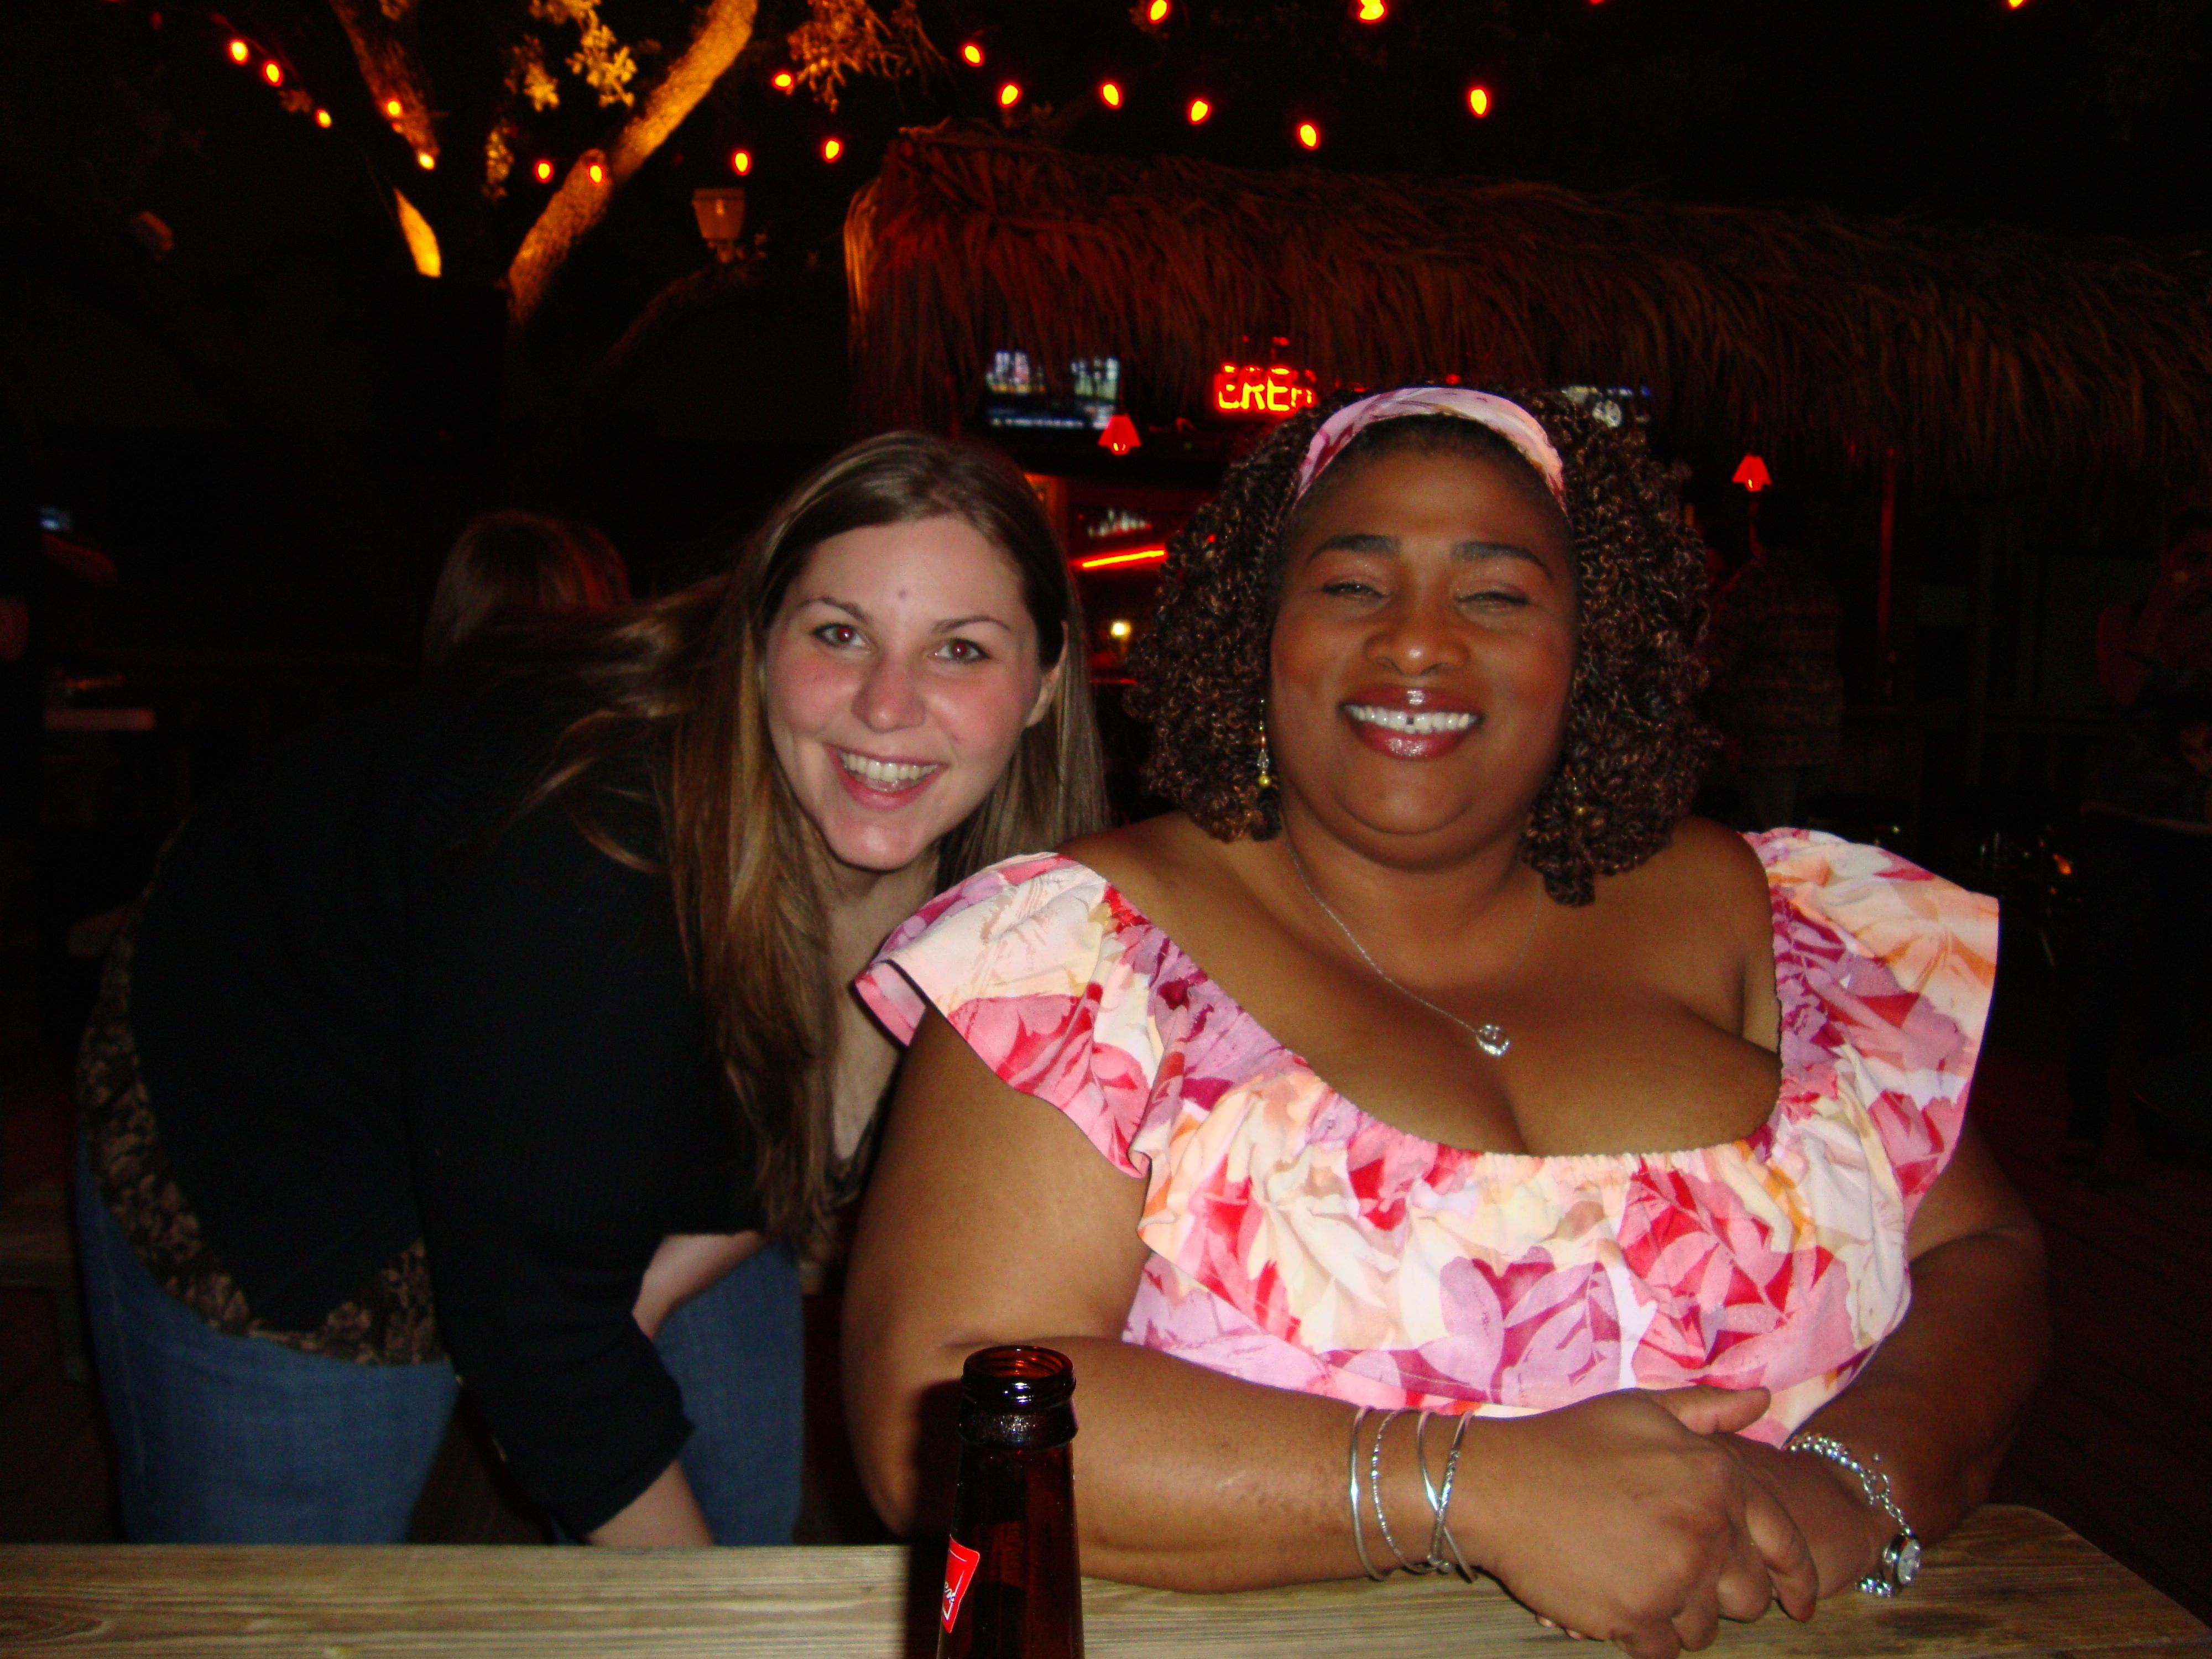 copperopolis big and beautiful singles Bbw meet,bbw dating,meet bbw singles  taking the time to view some chubby dating on the internet is a good way for you to meet up with a bbw or big beautiful.